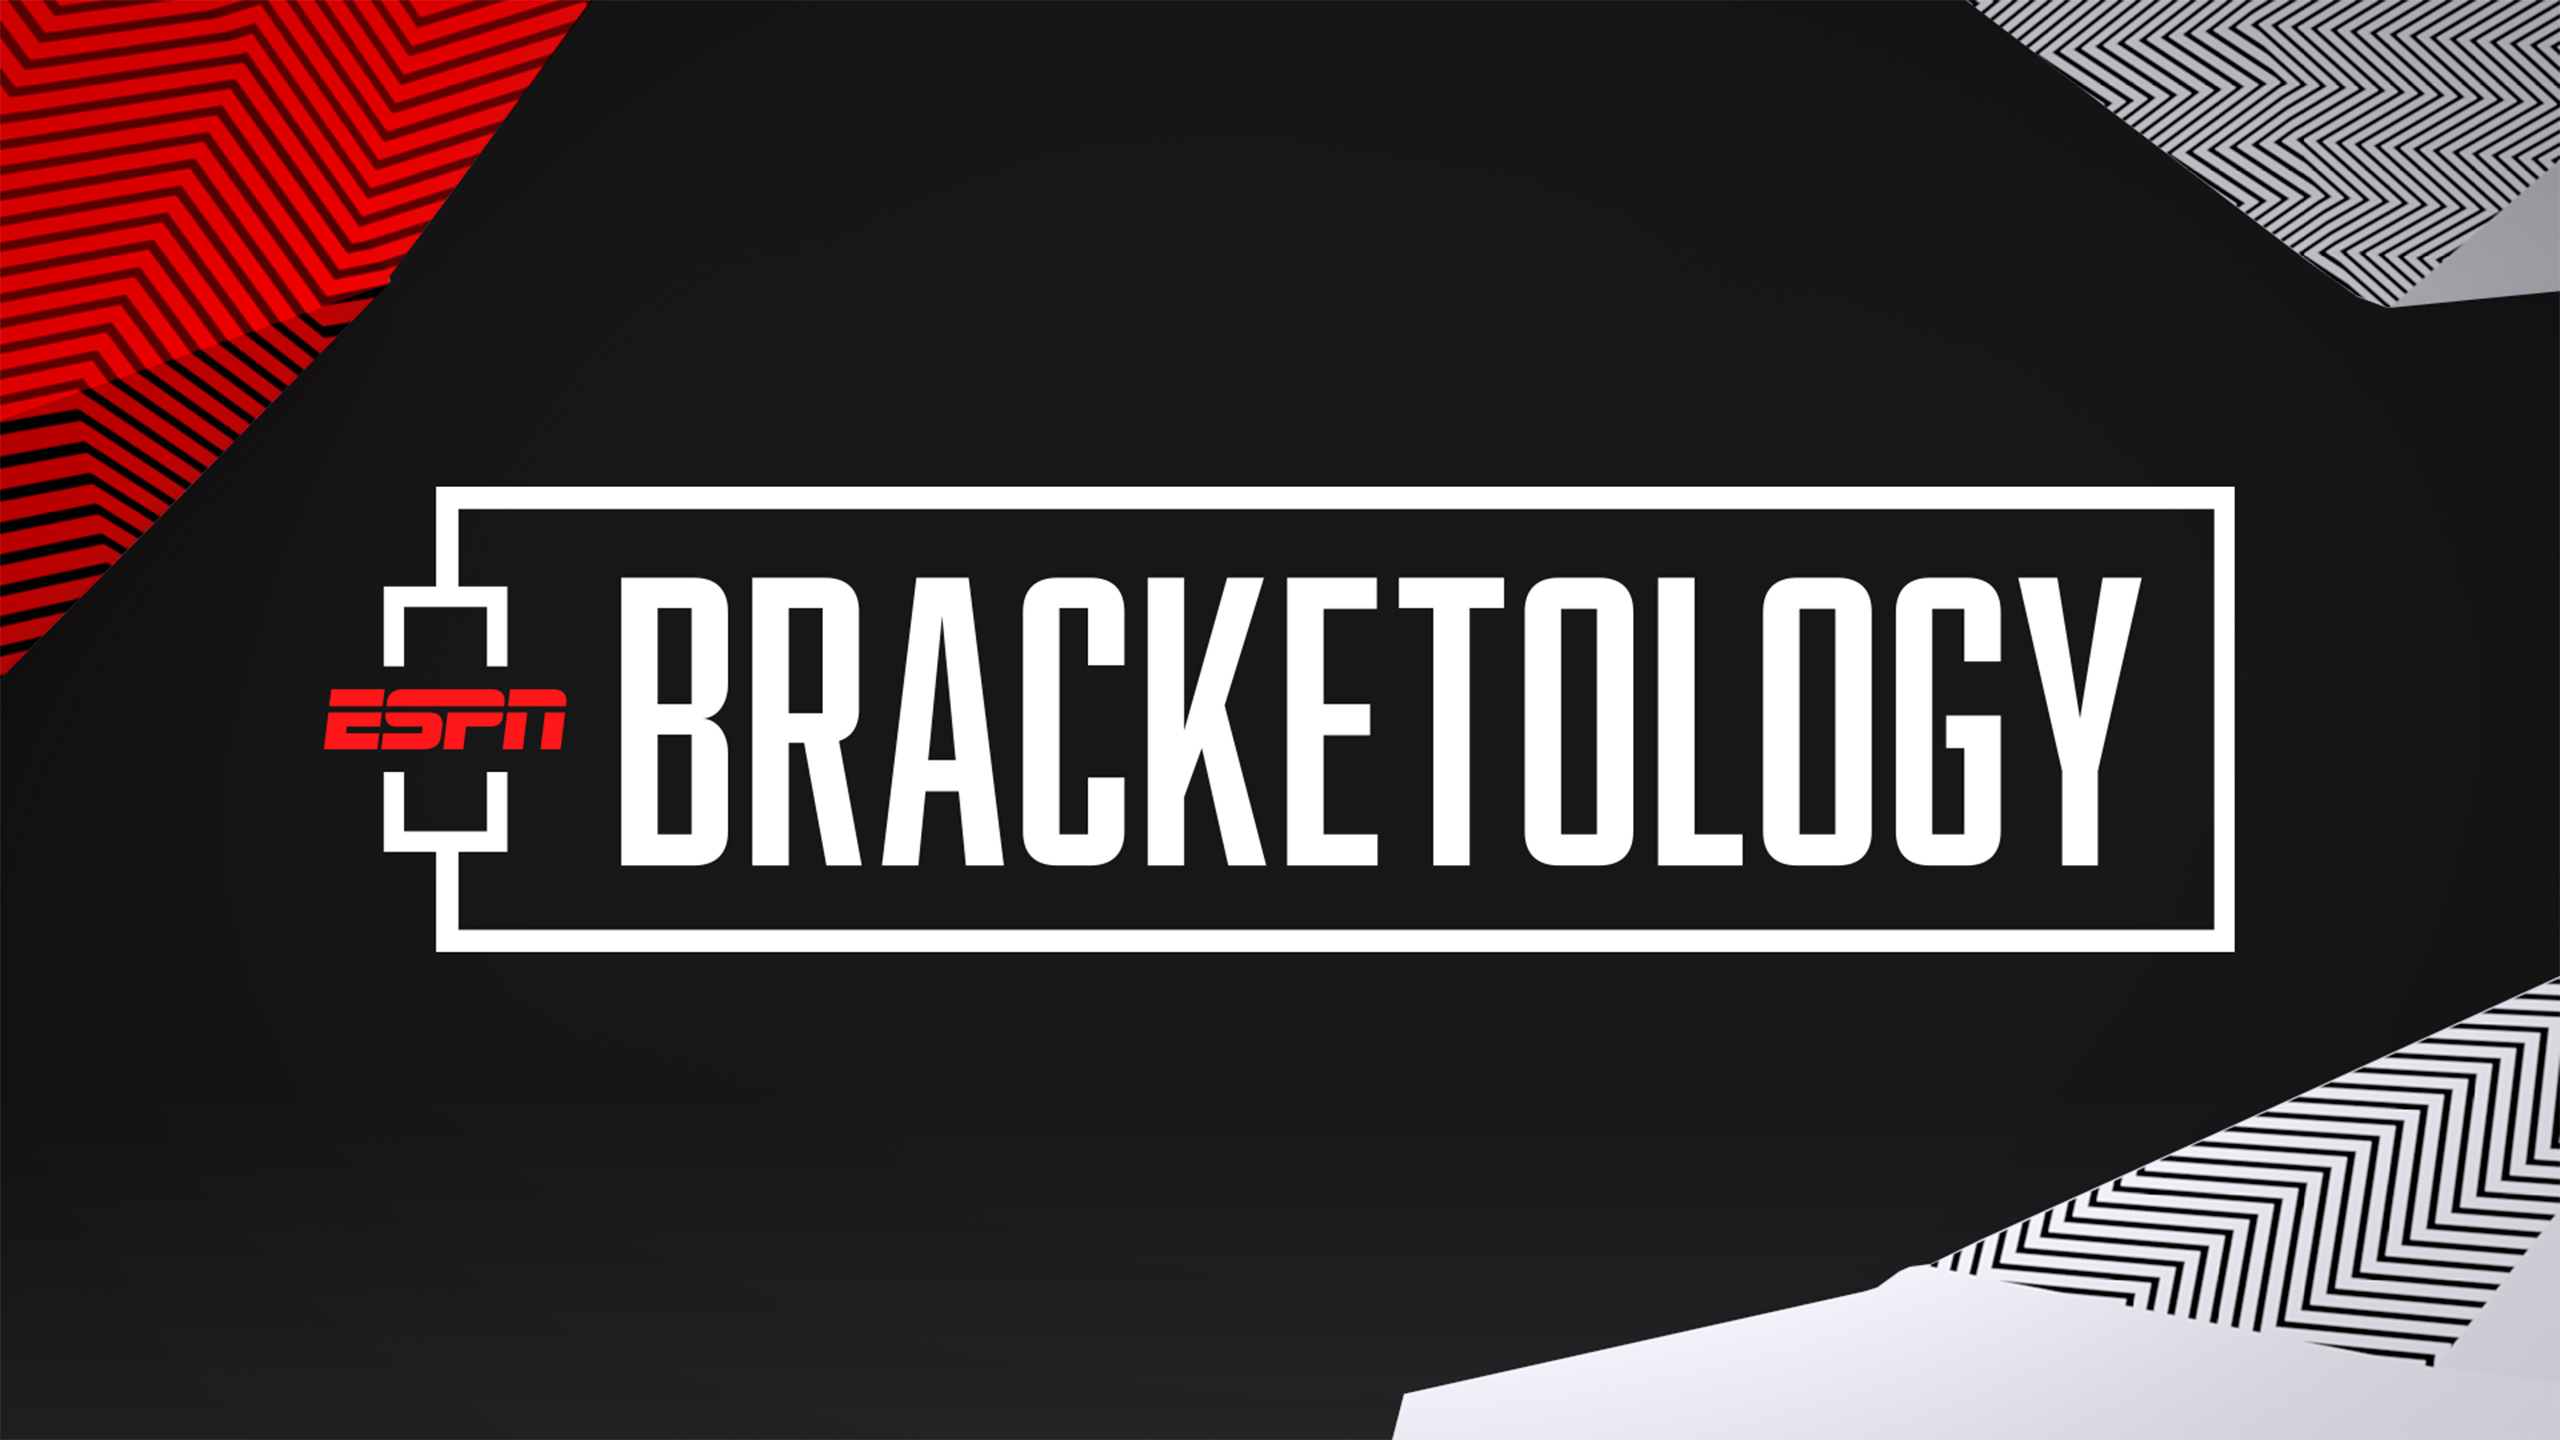 Bracketology presented by Lowe's